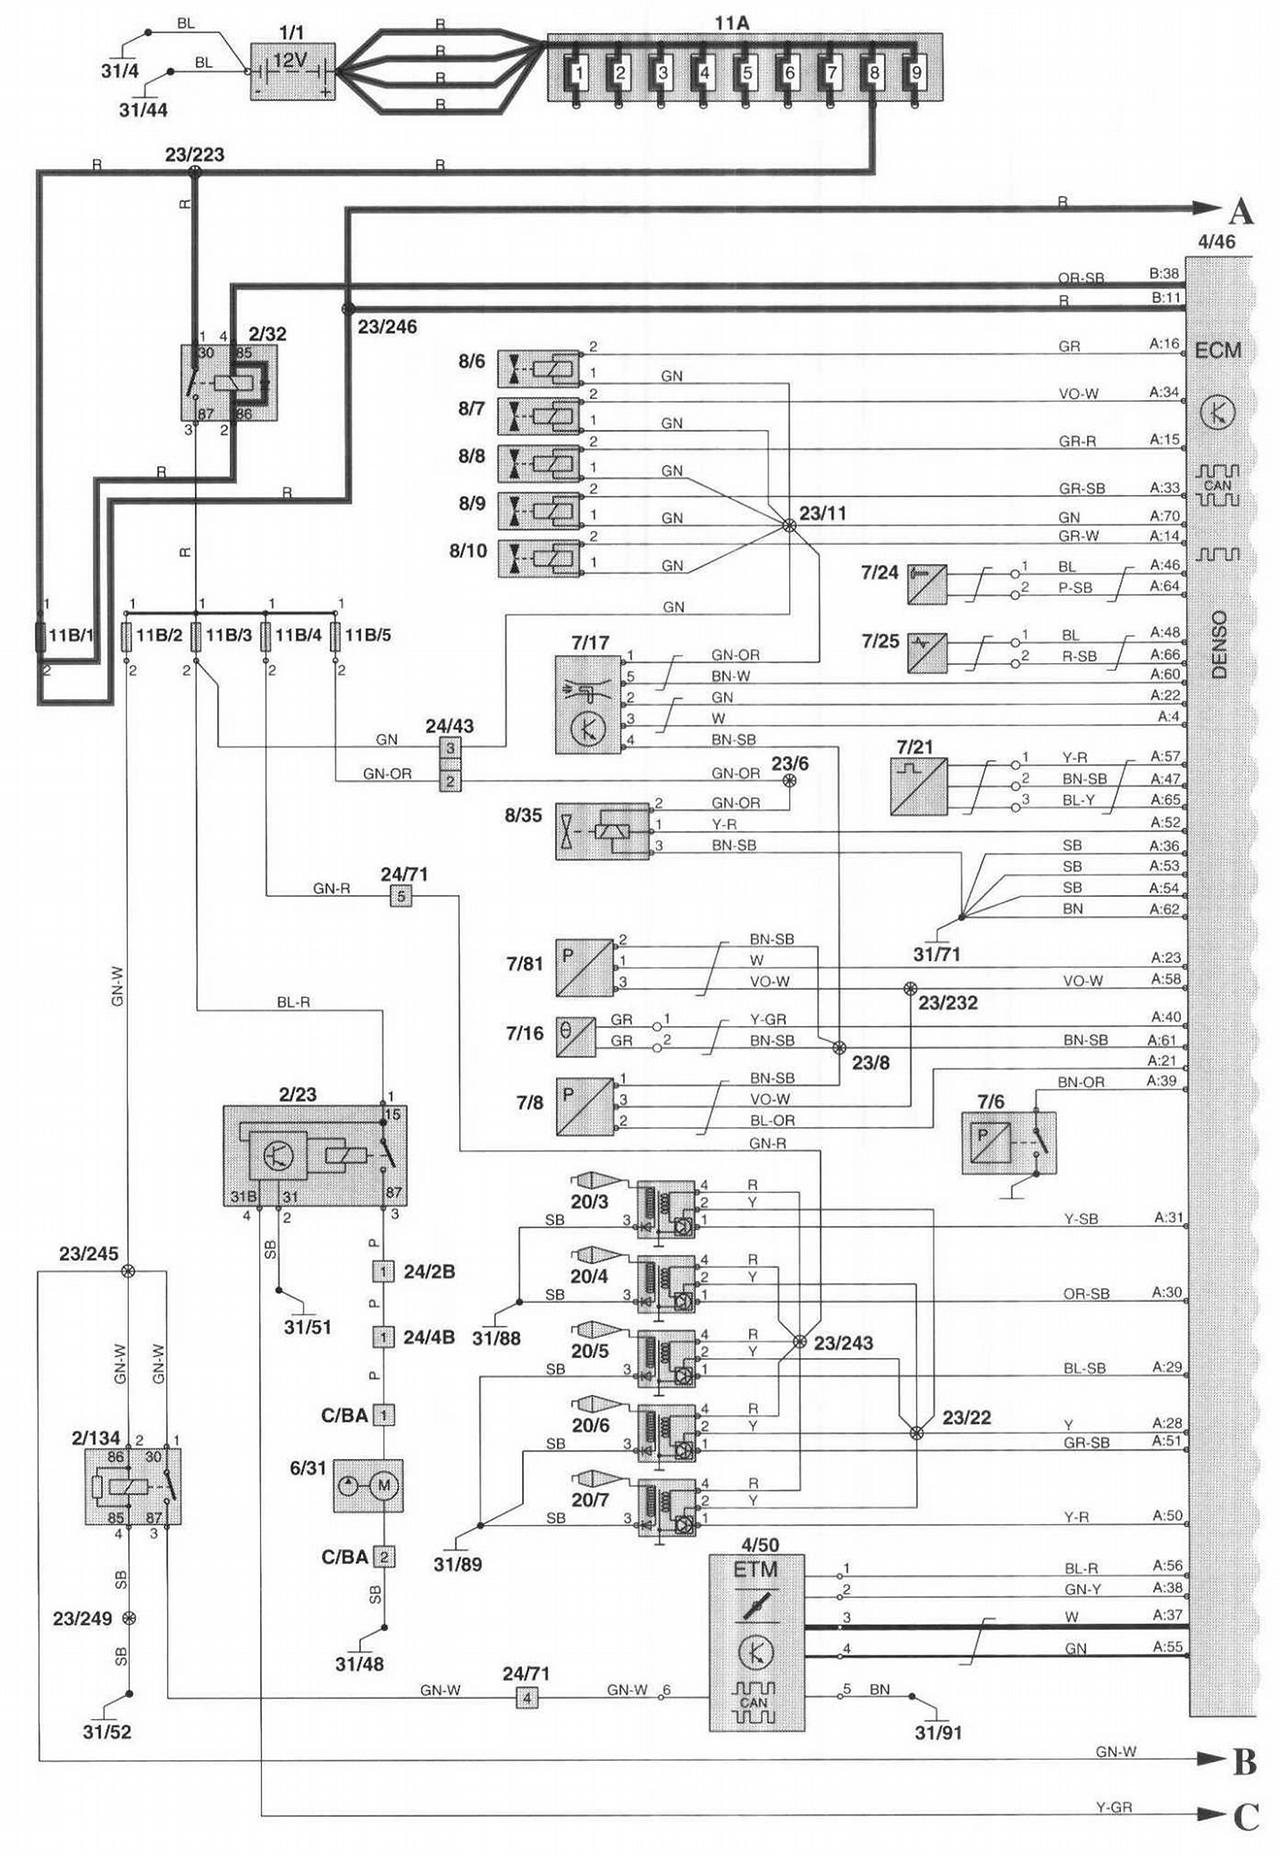 Volvo Xc Wiringdiagram Crdeugb on 2003 Volvo S40 Wiring Diagram